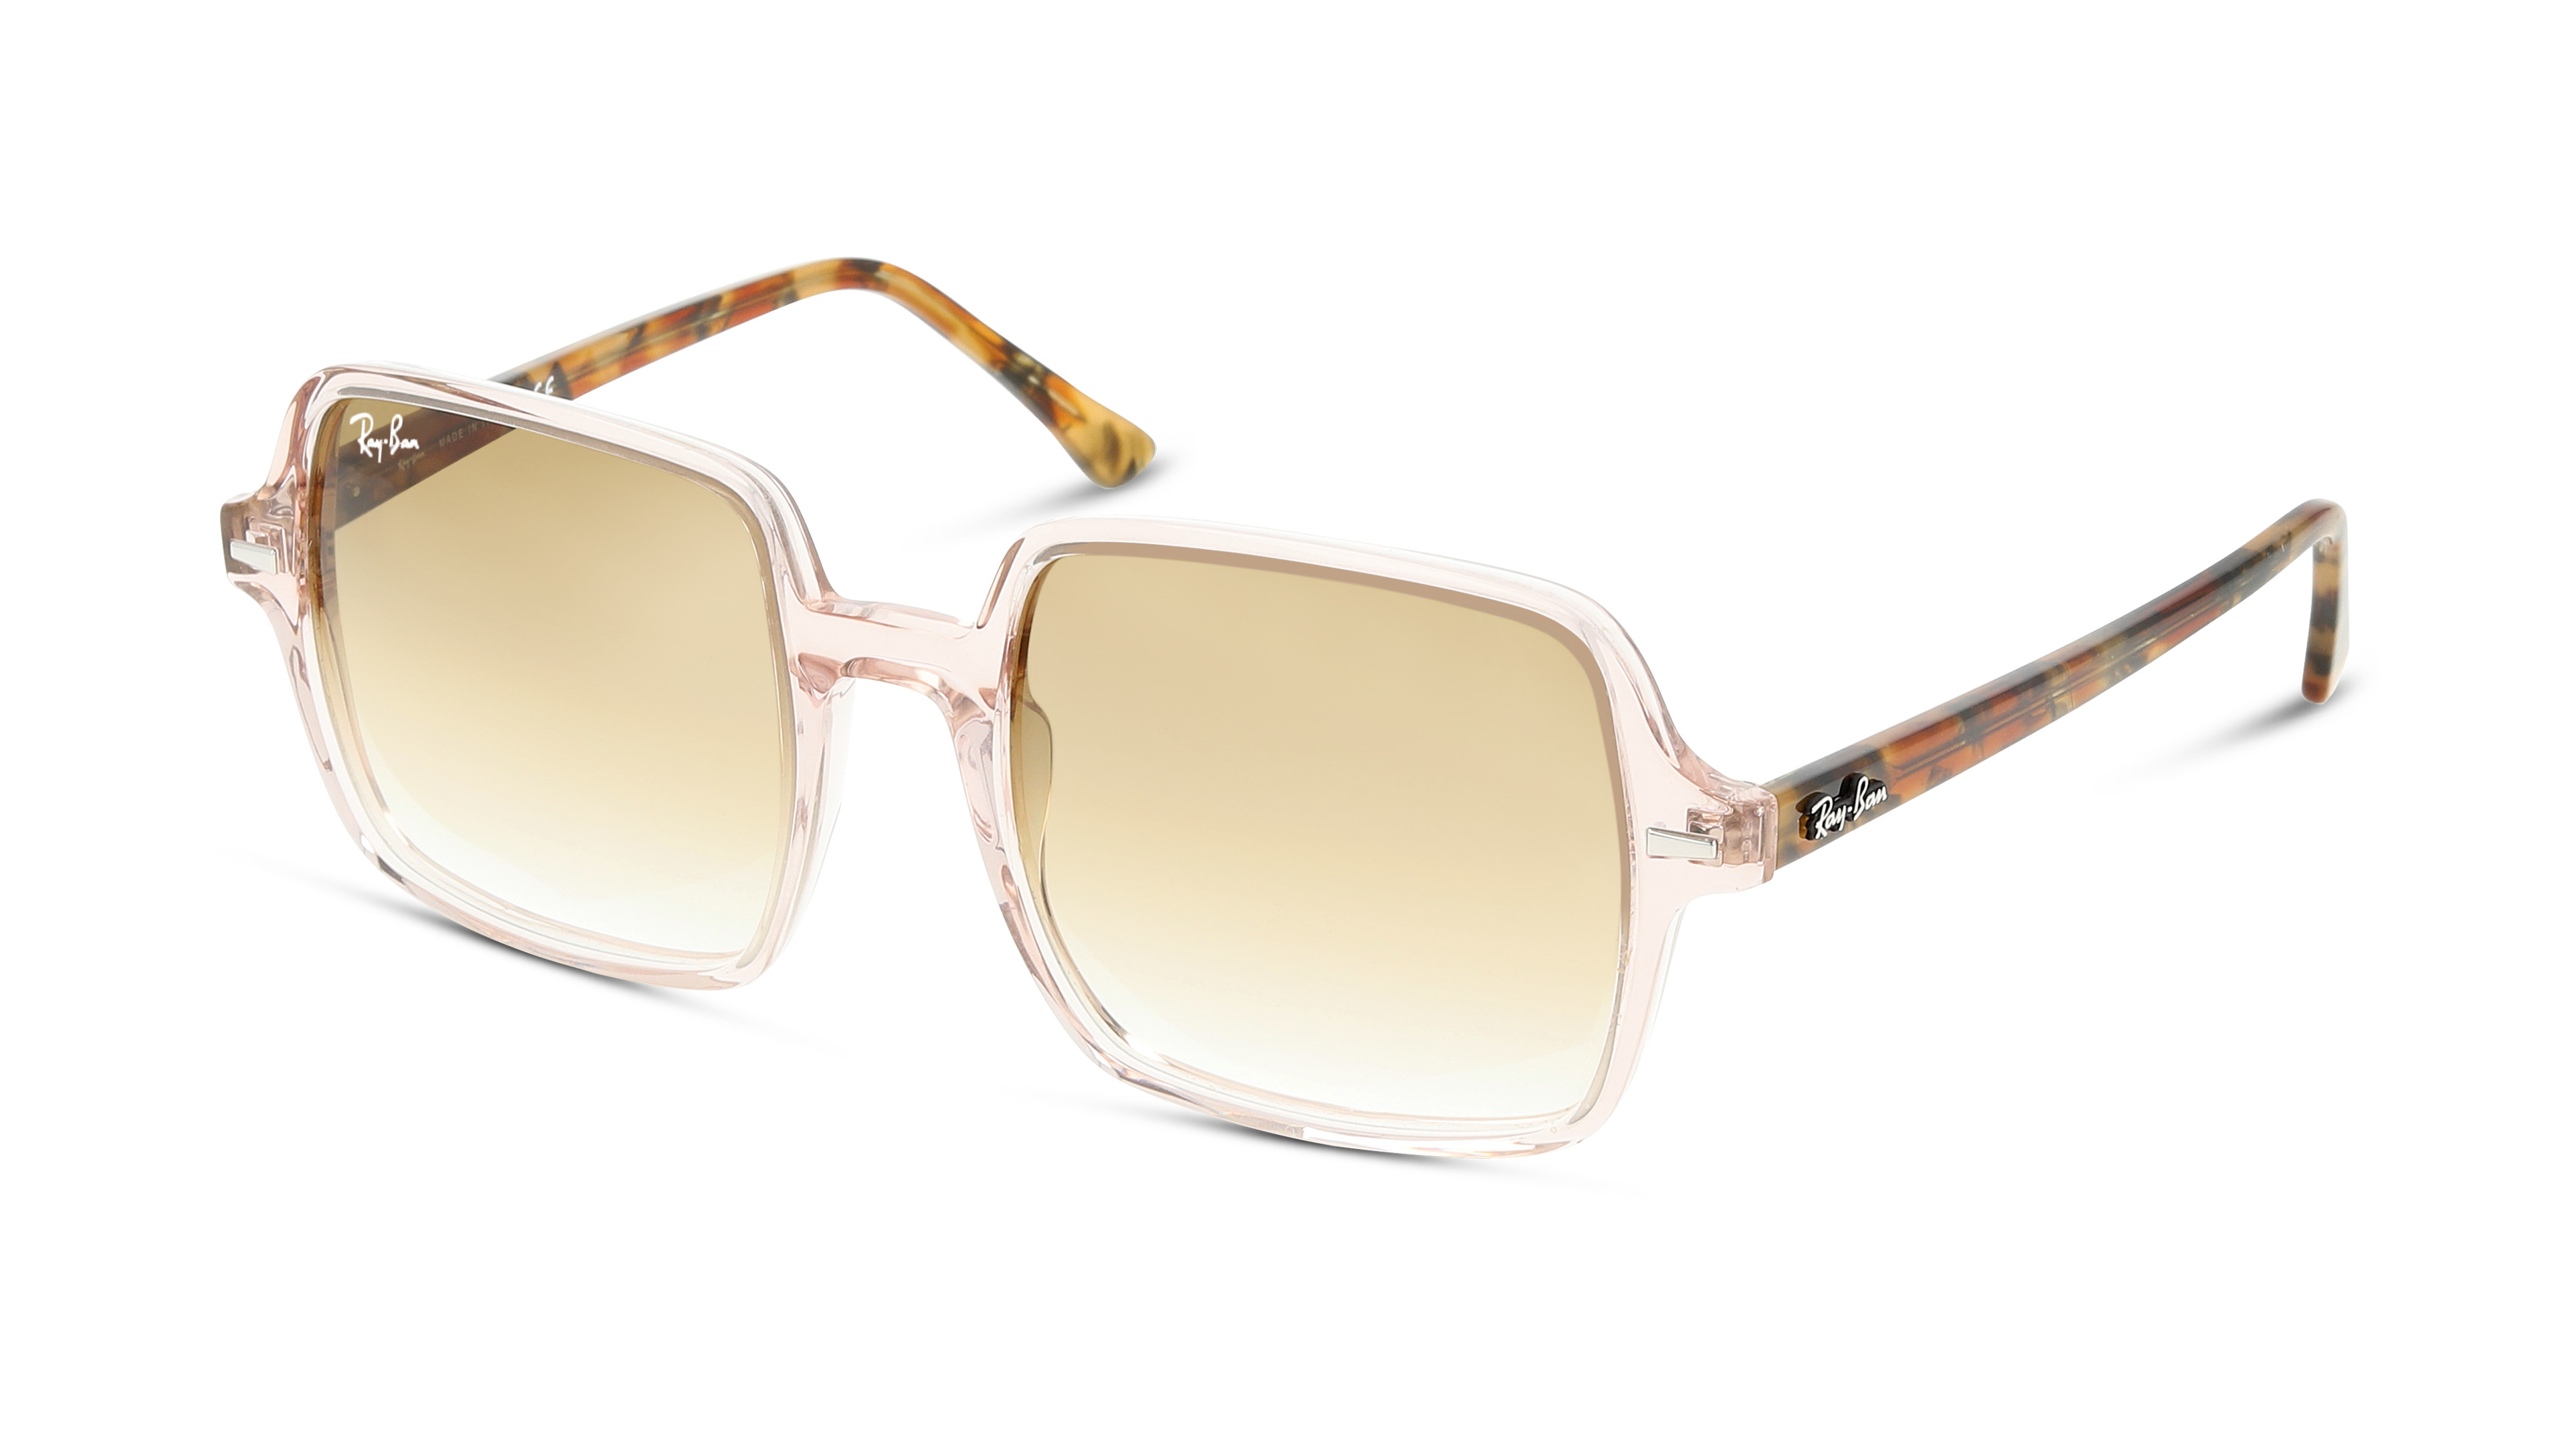 8056597121903-angle-Ray-Ban-Sonnenbrille-0rb1973-square-2-transparent-light-brown